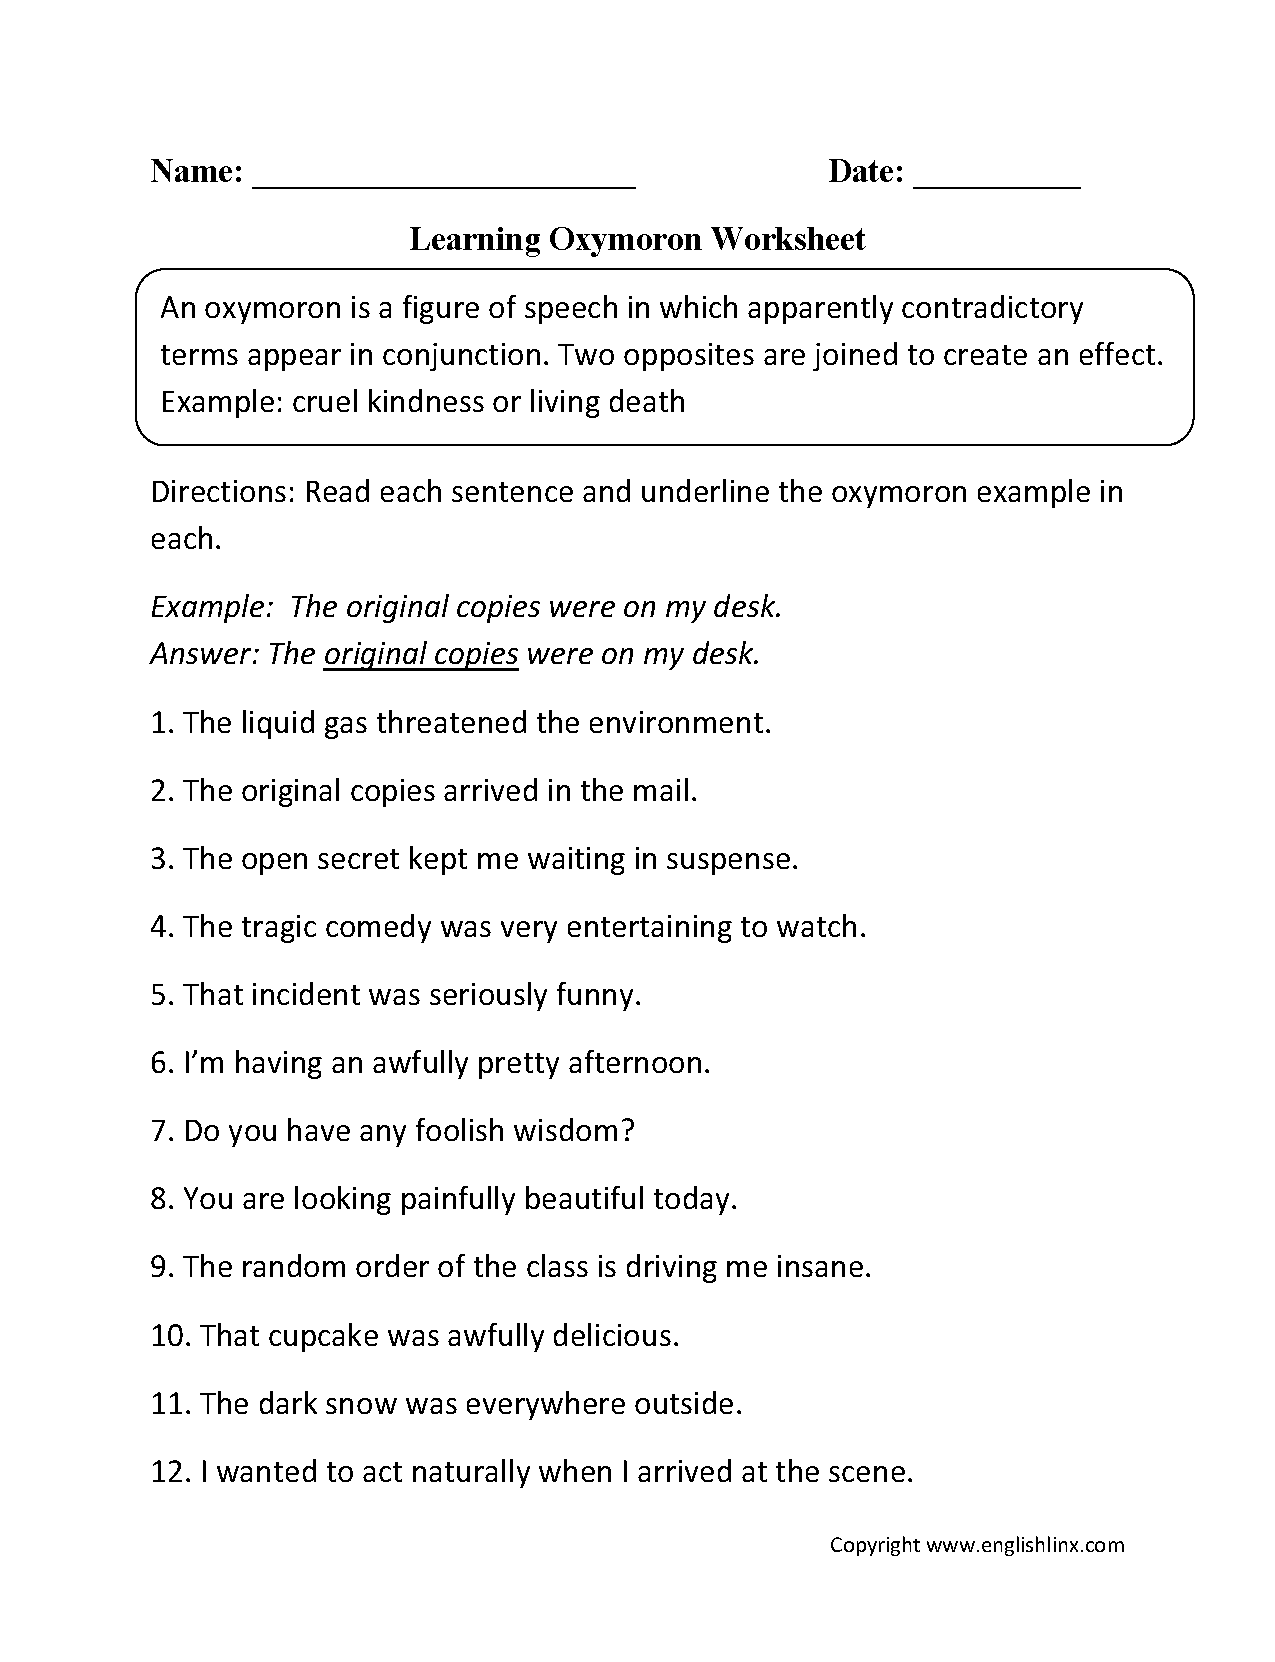 Oxymoron Figurative Language Worksheets With Images